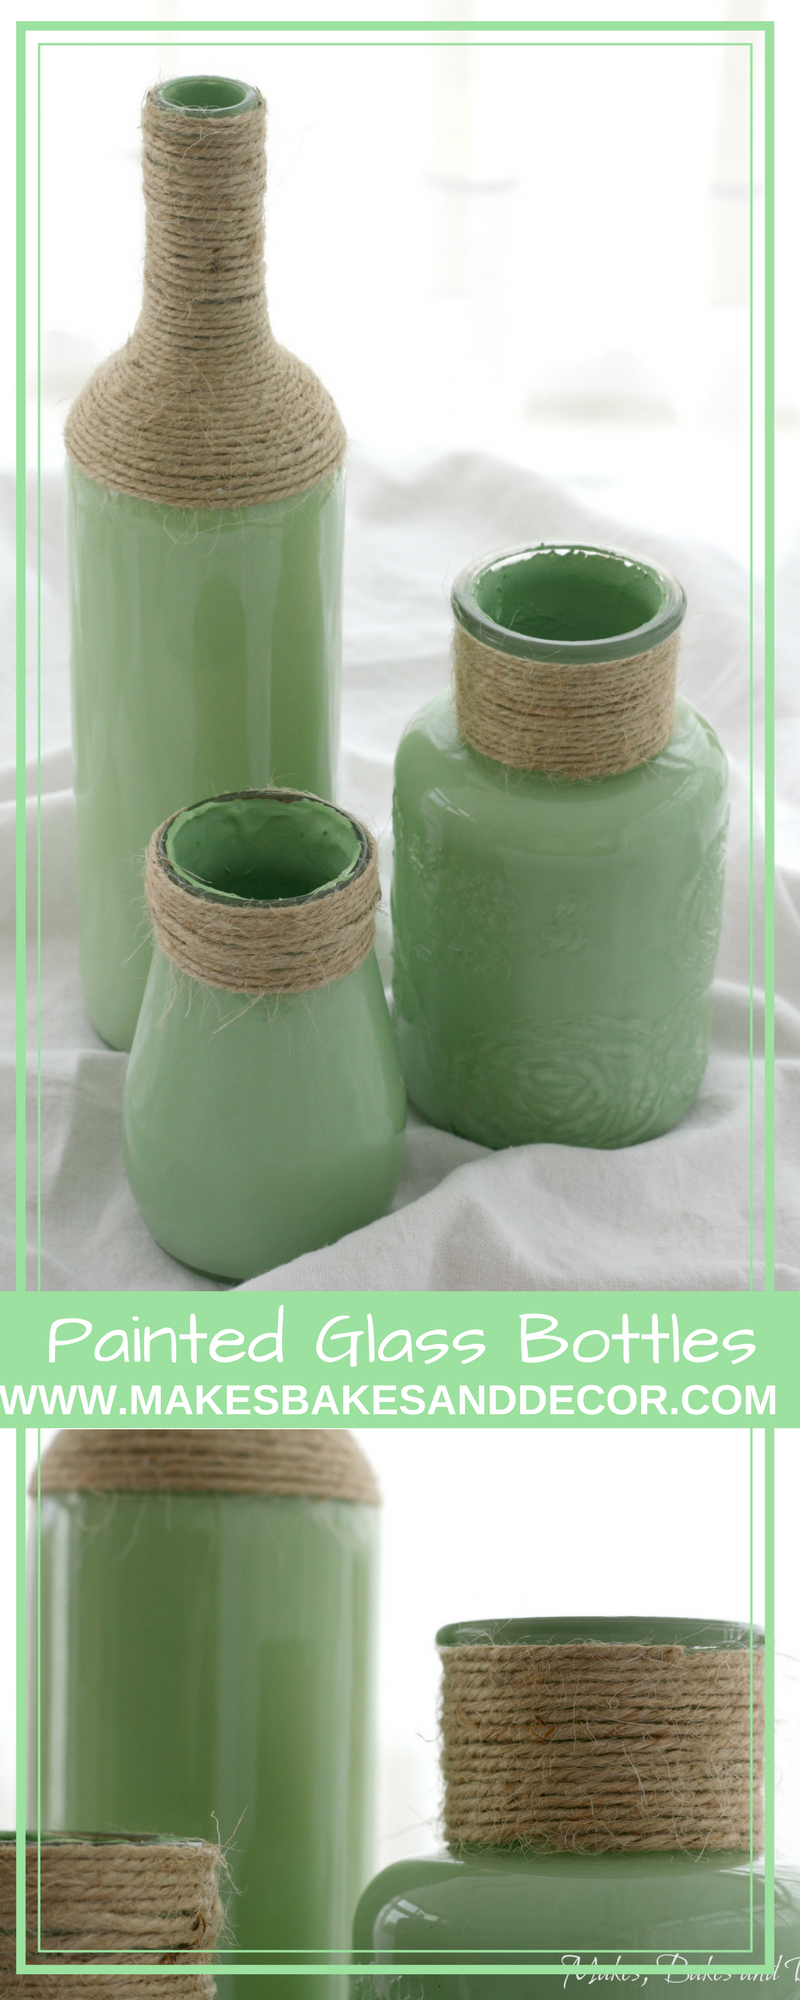 Painted Glass Bottles Makes Bakes And Decor